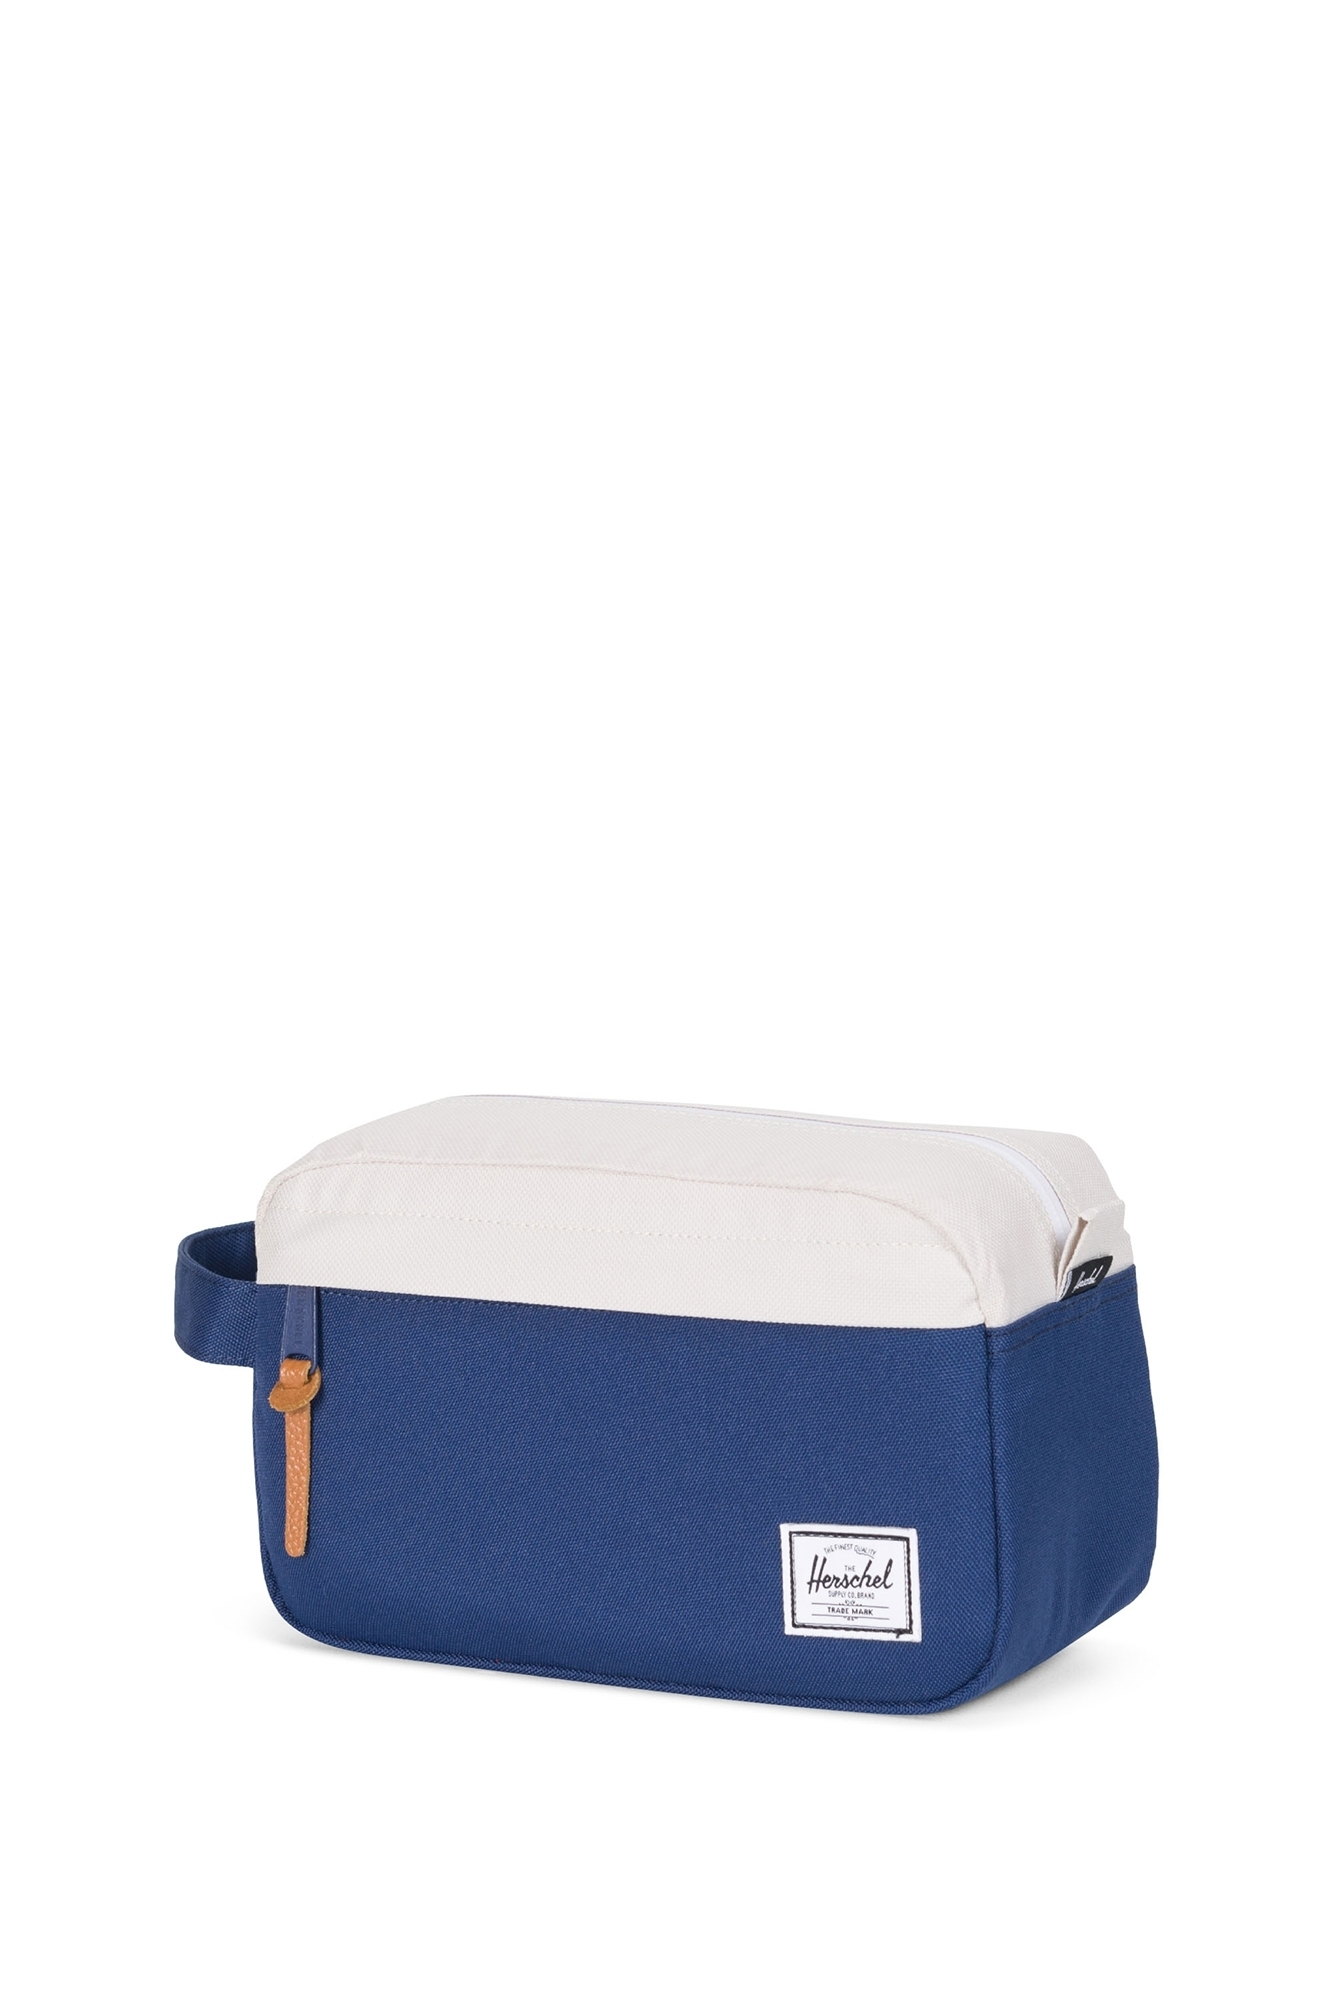 Herschel - Beauty chapter classic travel twilight